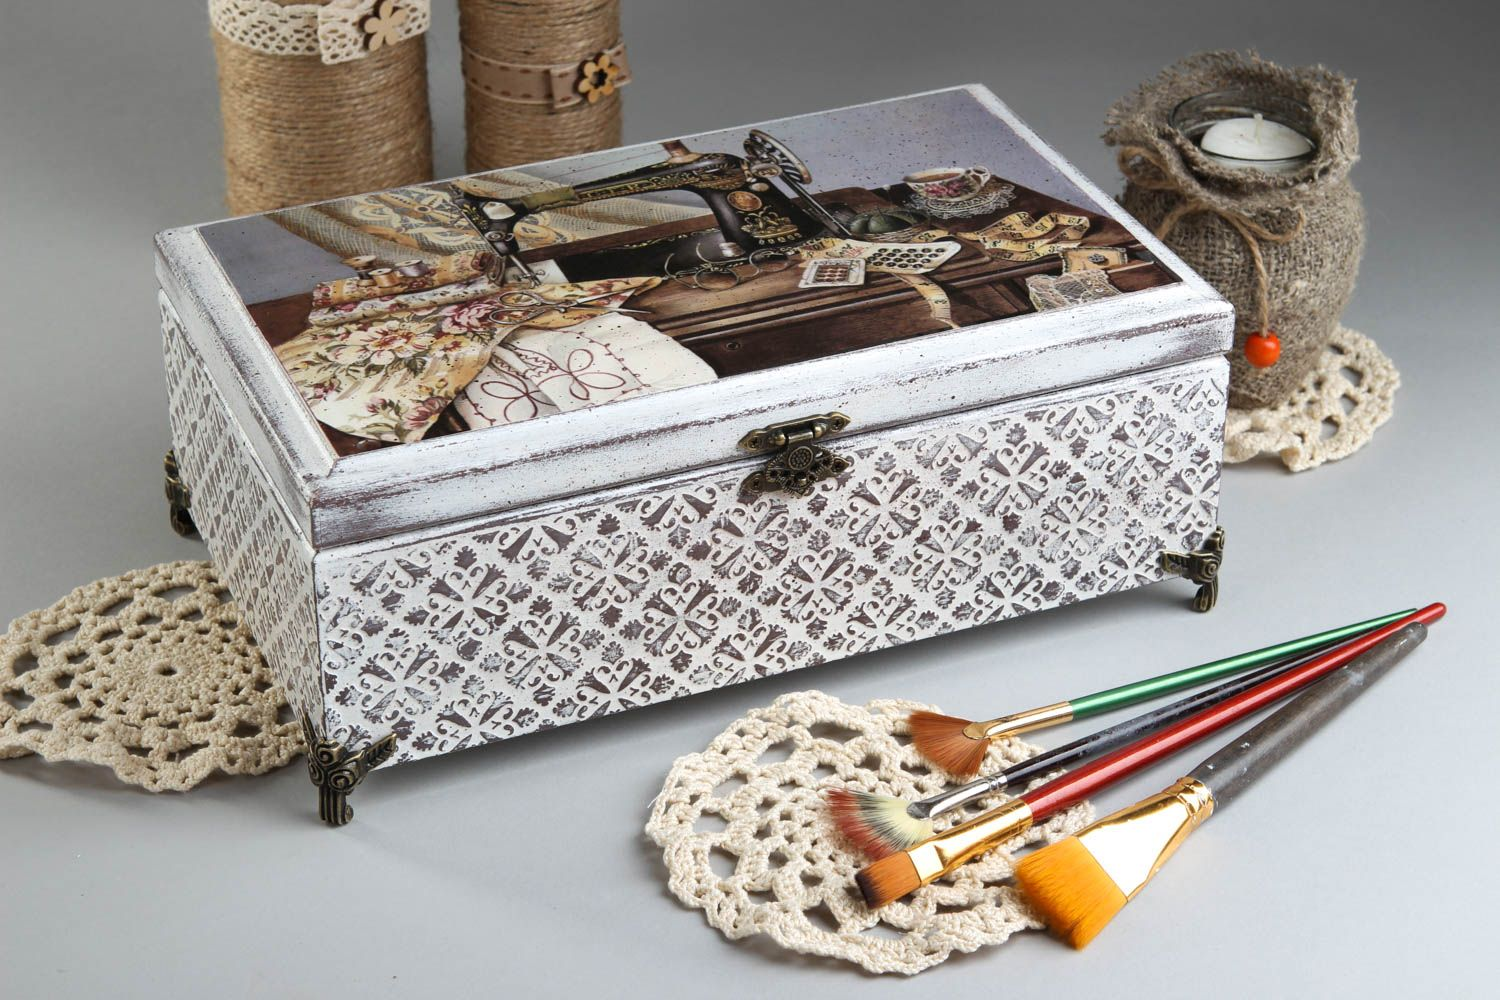 Handmade jewelry box with decoupage wood boxes home decor ideas wooden decor